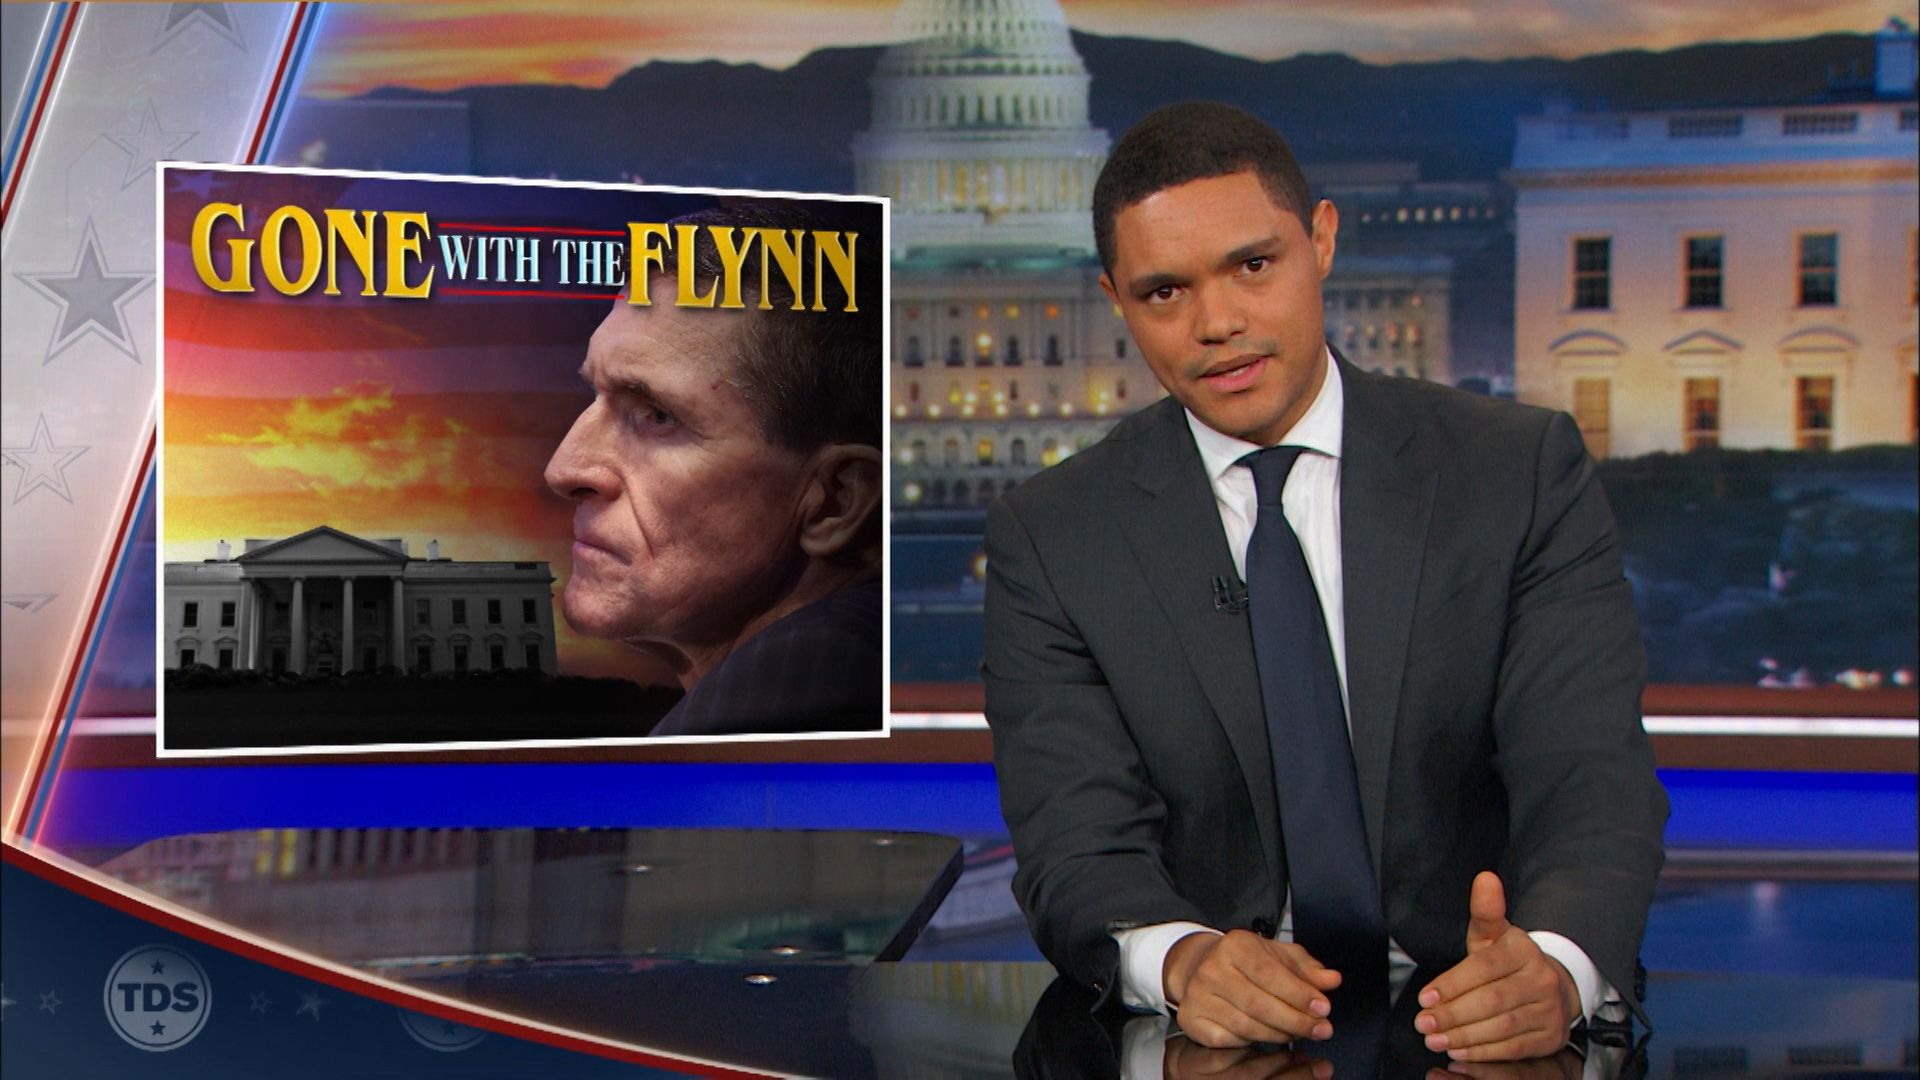 Michael Flynn Becomes the First Casualty of the Trump Administration - The  Daily Show with Trevor Noah (Video Clip) | Comedy Central